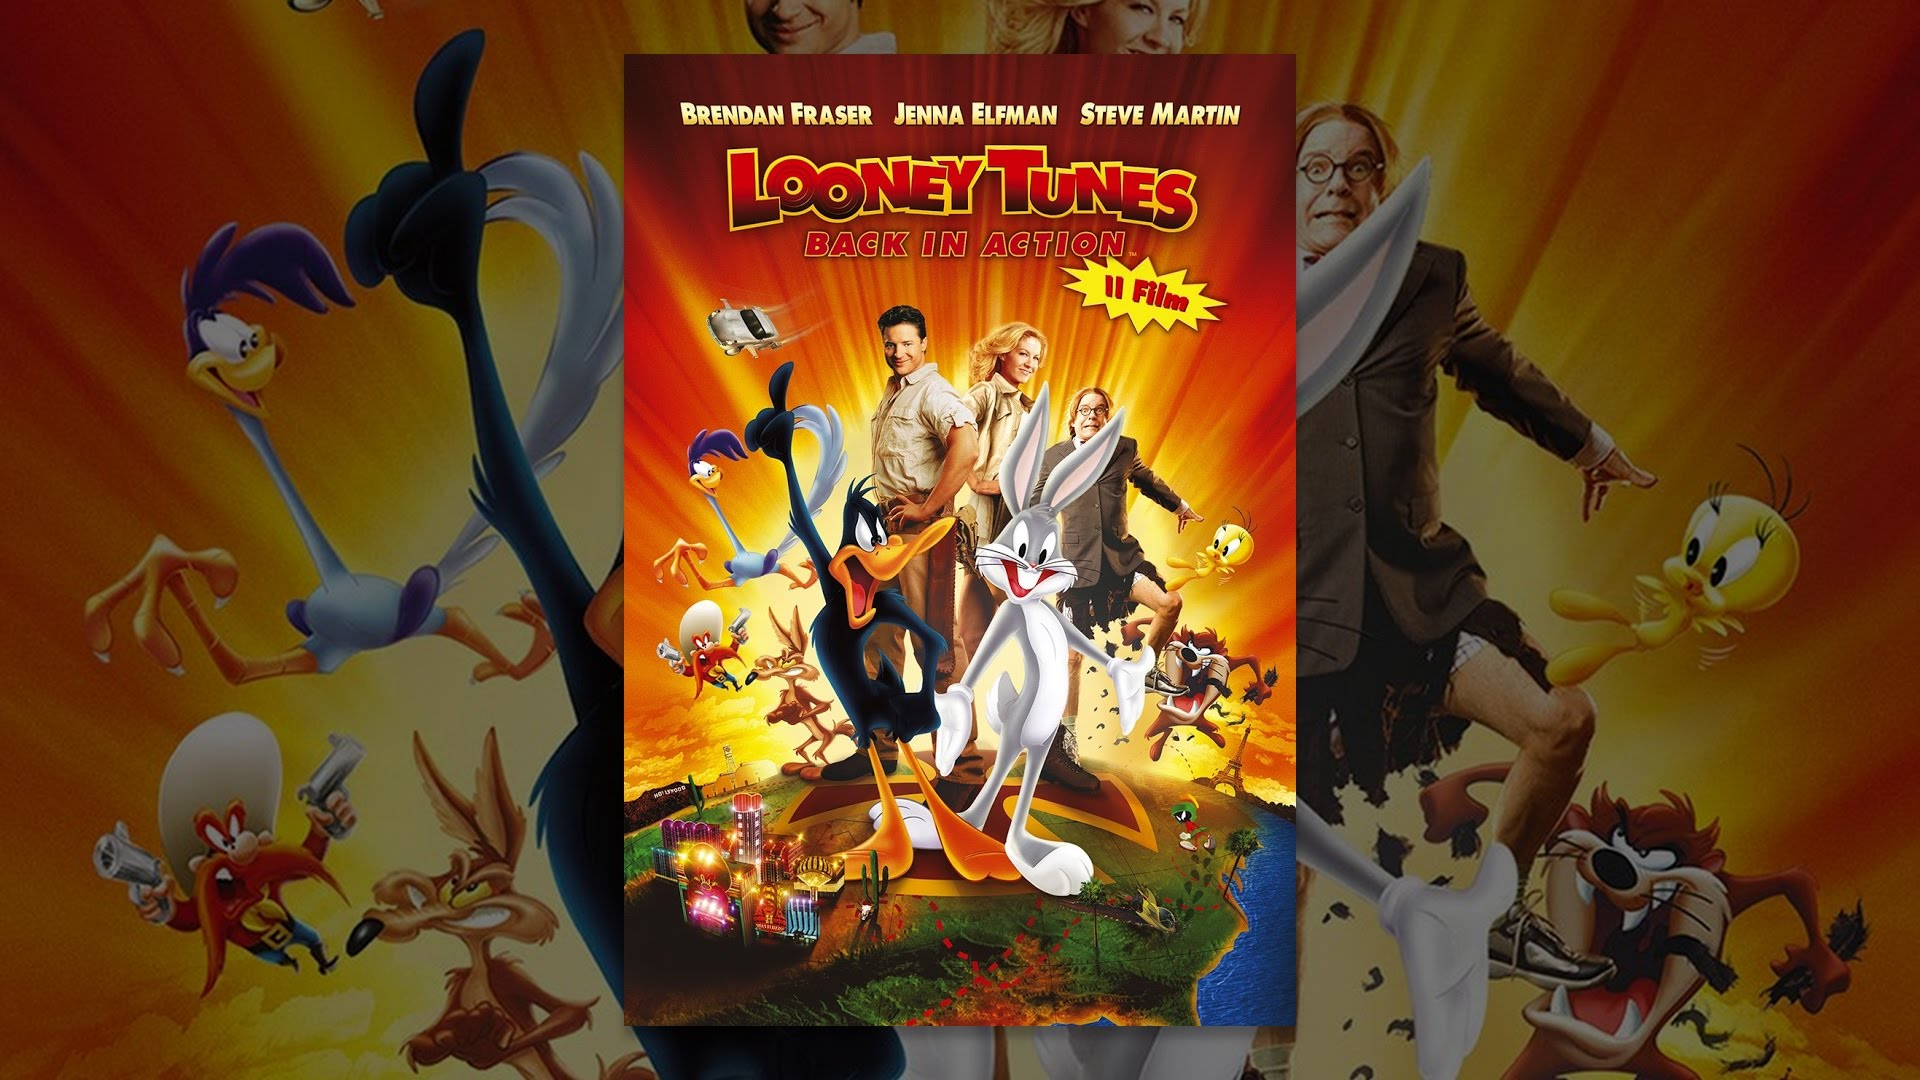 Looney tunes back in action streaming ita